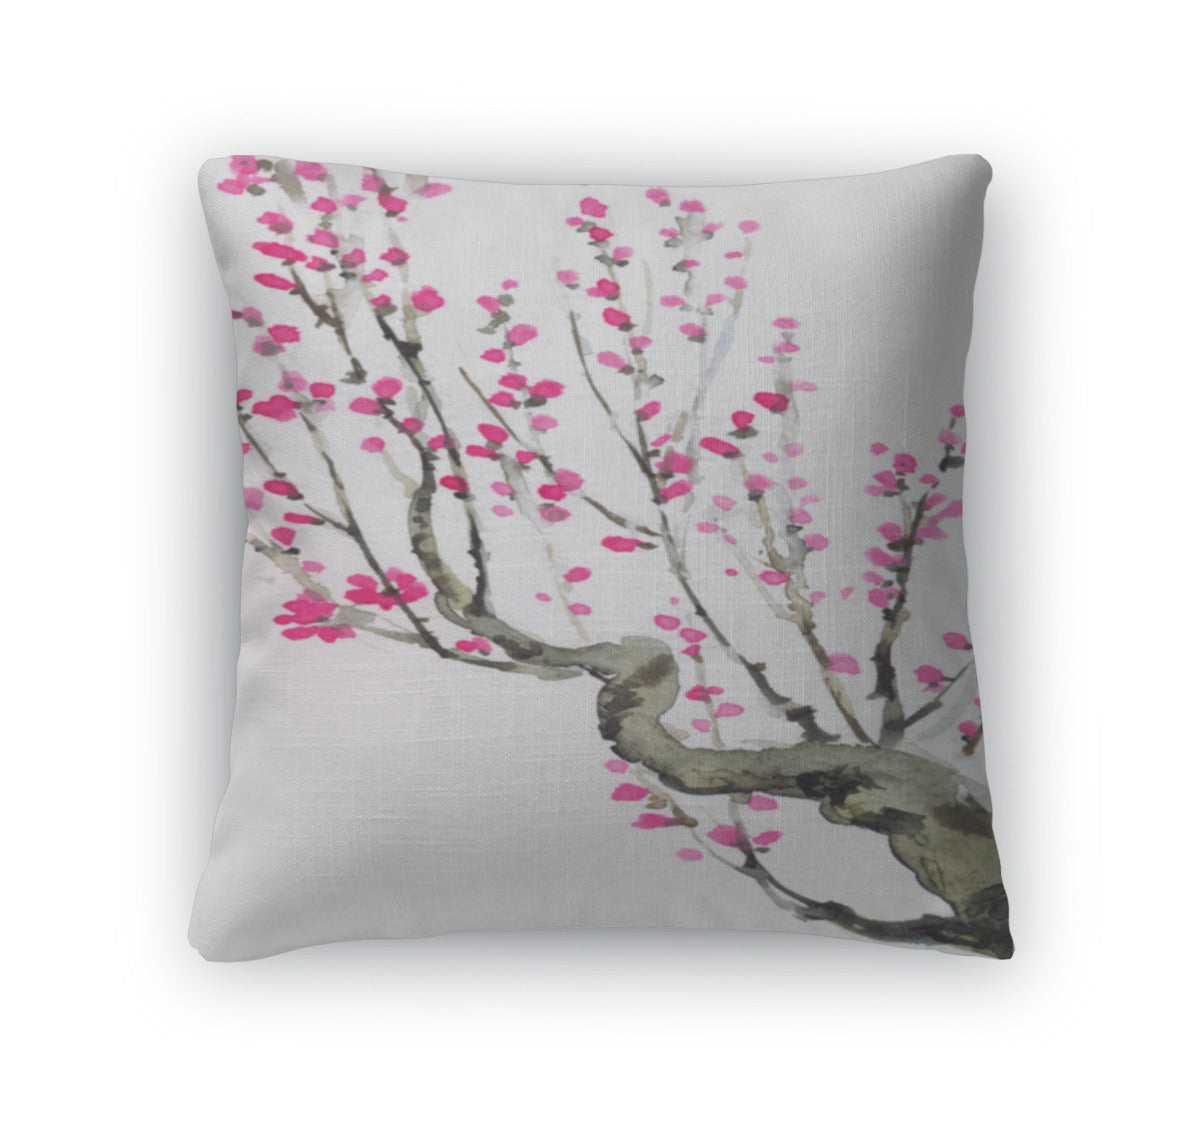 Throw Pillow, Watercolor Crimson Flowers On Tree Branches